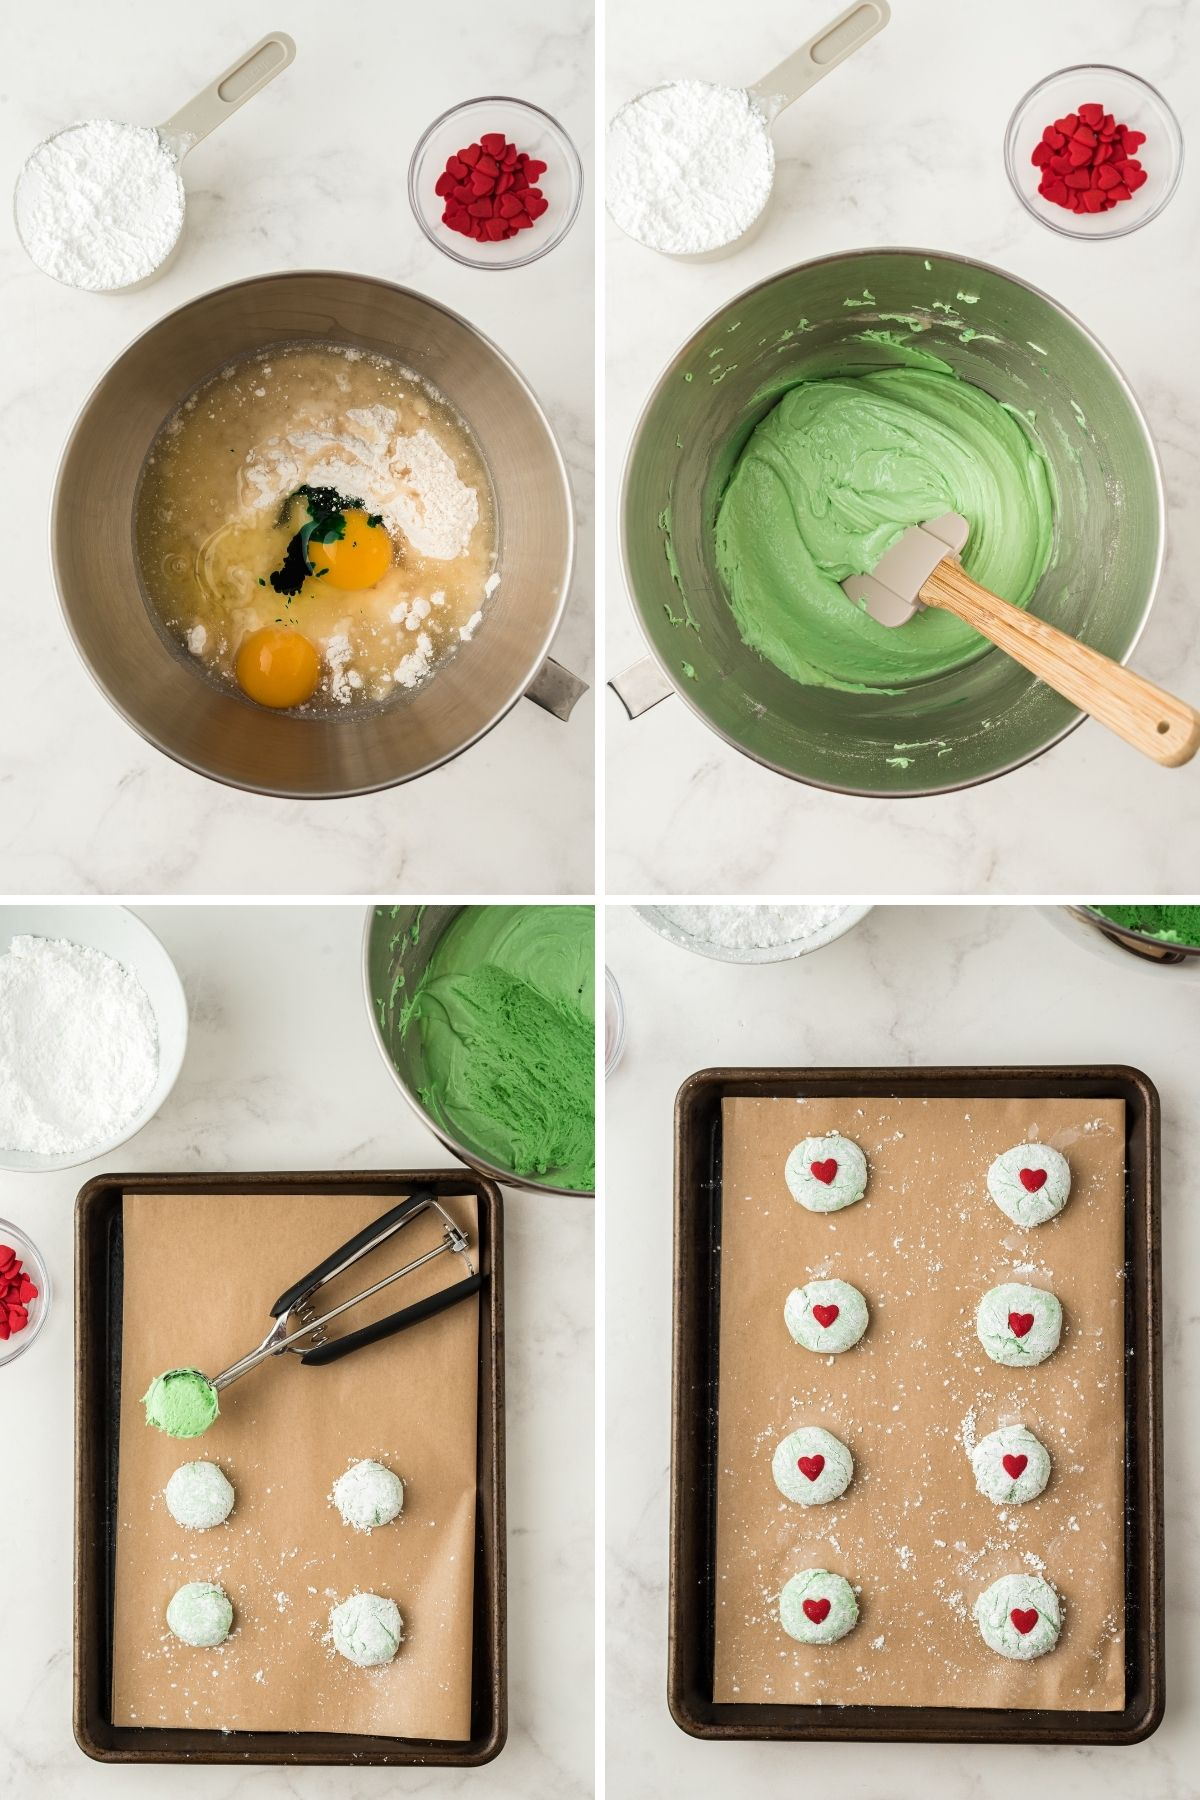 four steps: bowl with ingredients and raw eggs and green food coloring; bowl with green mixture; sheet pan with parchment and four cookies and a cookie scoop; baking sheet with cookies lines up with a heart sprinkle in the center